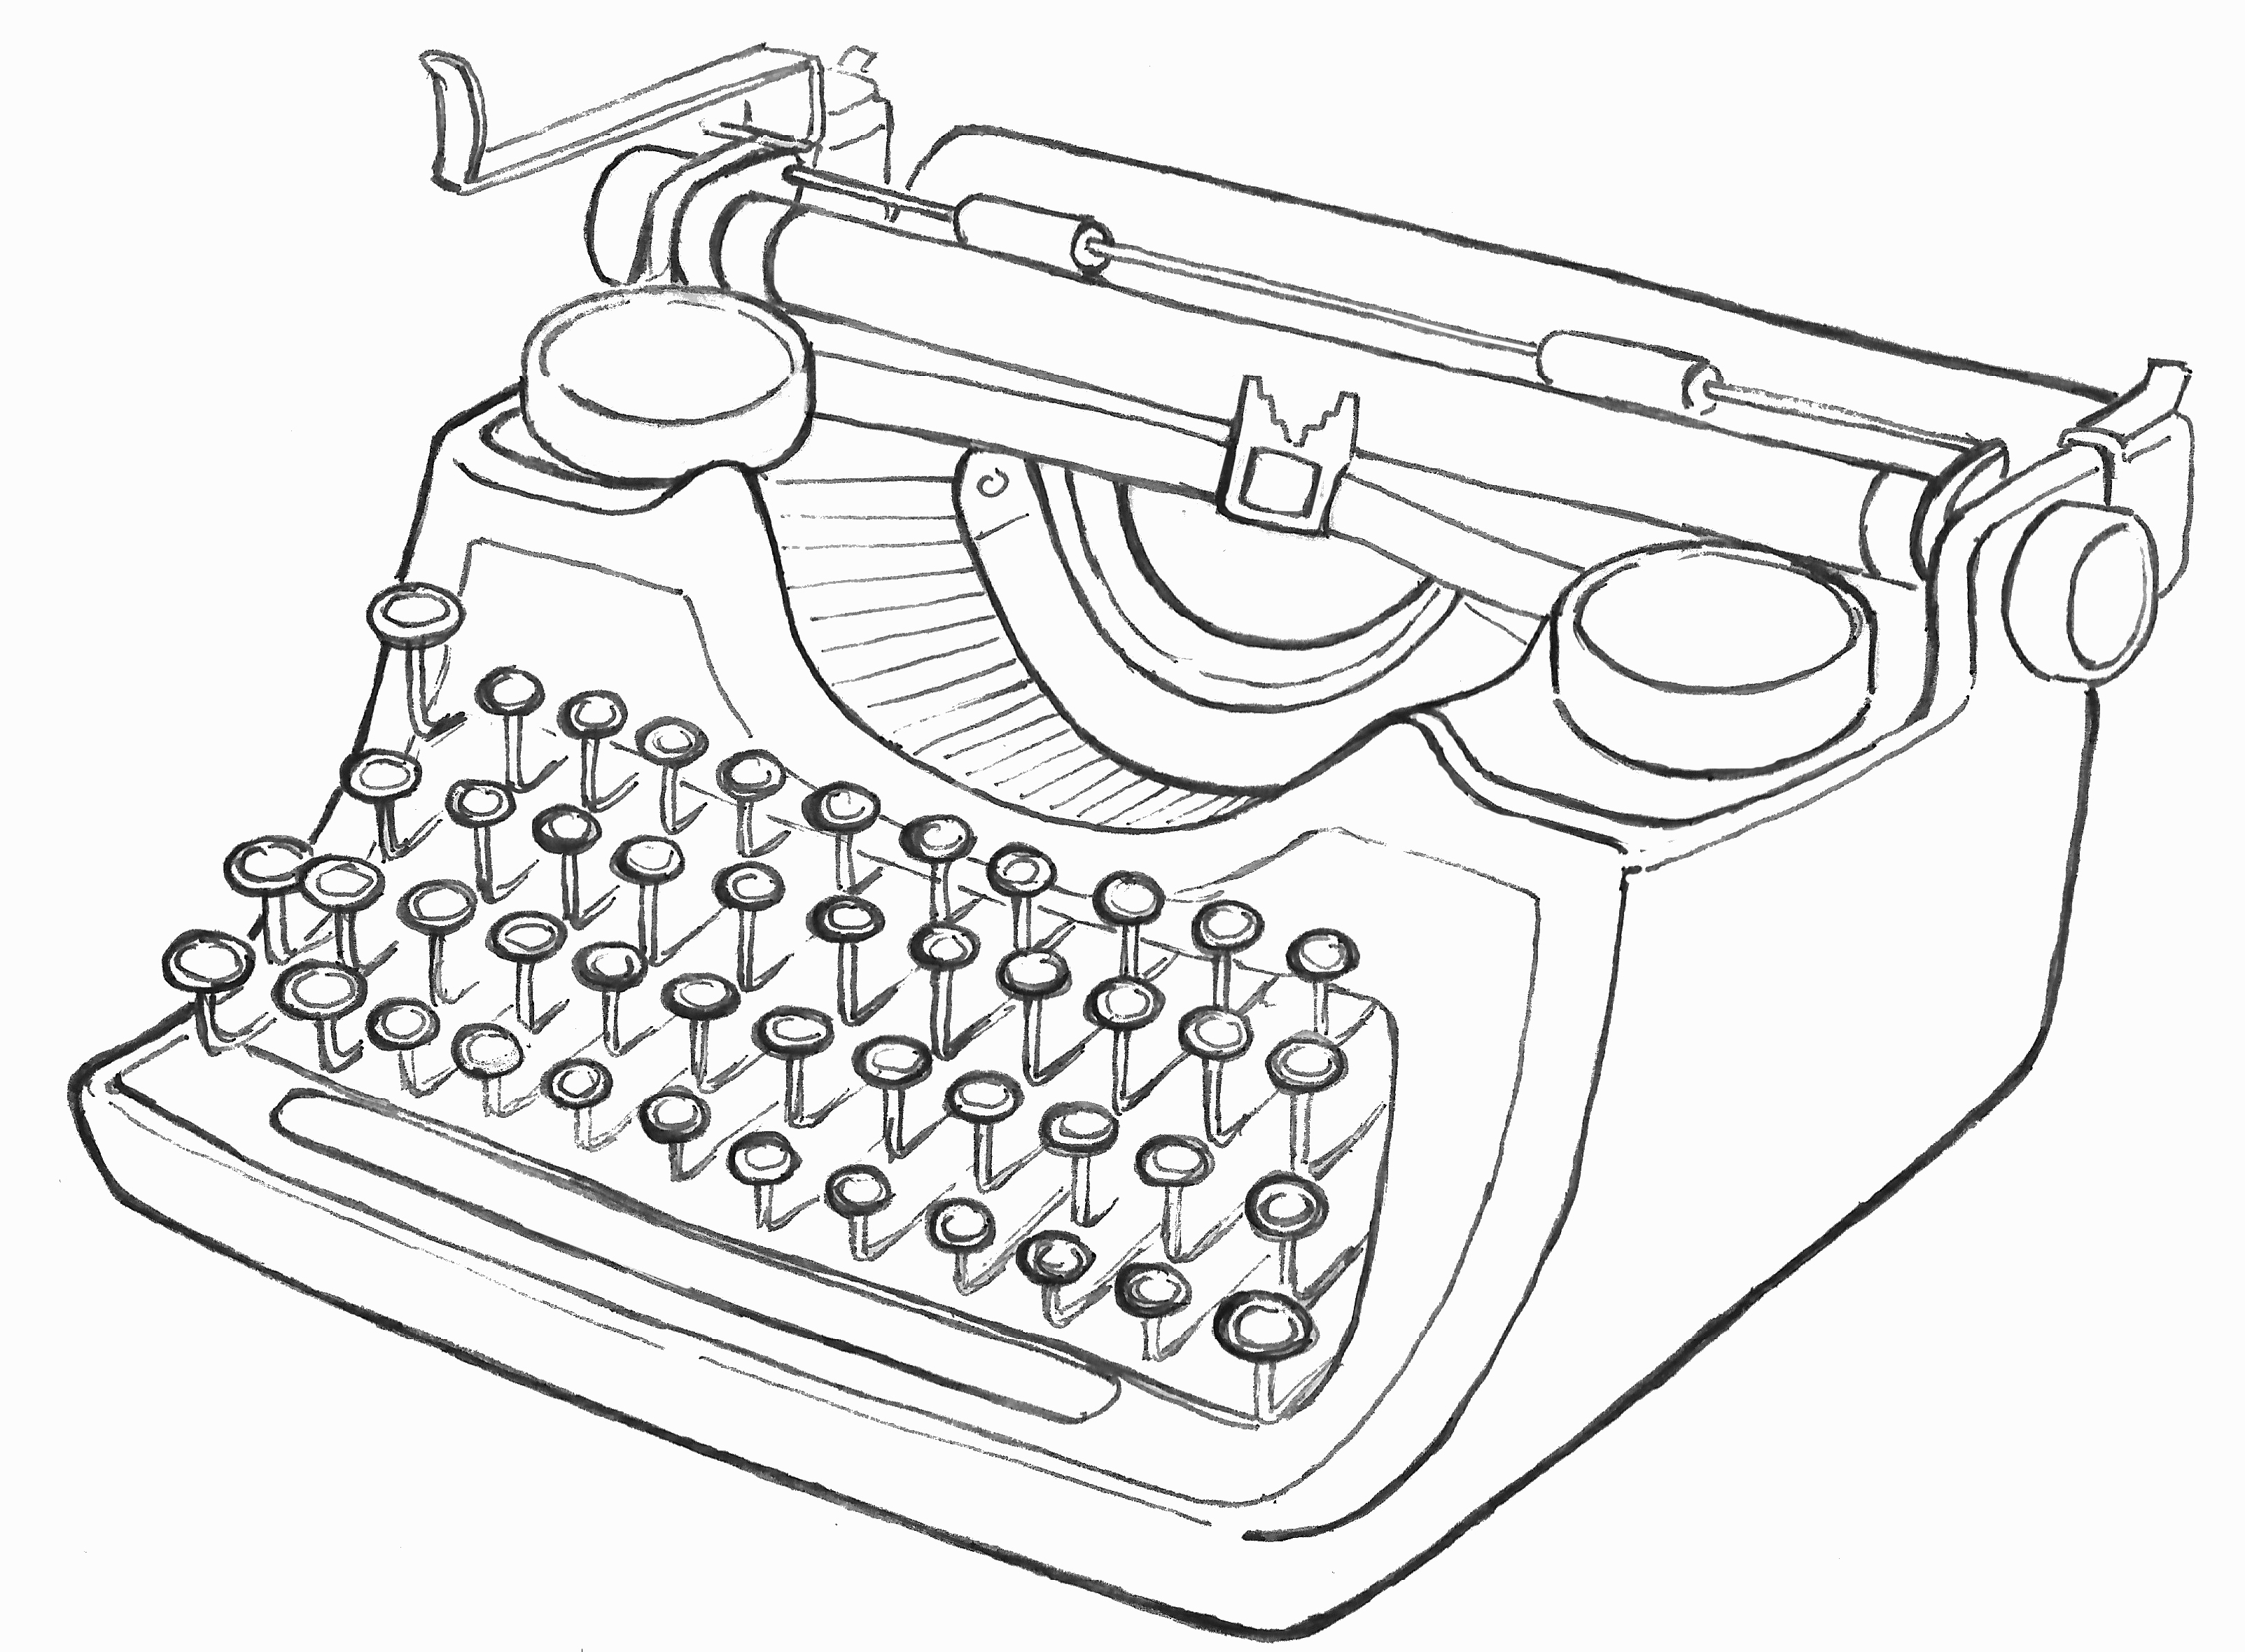 Ideas, Logos and Typewriters on Pinterest